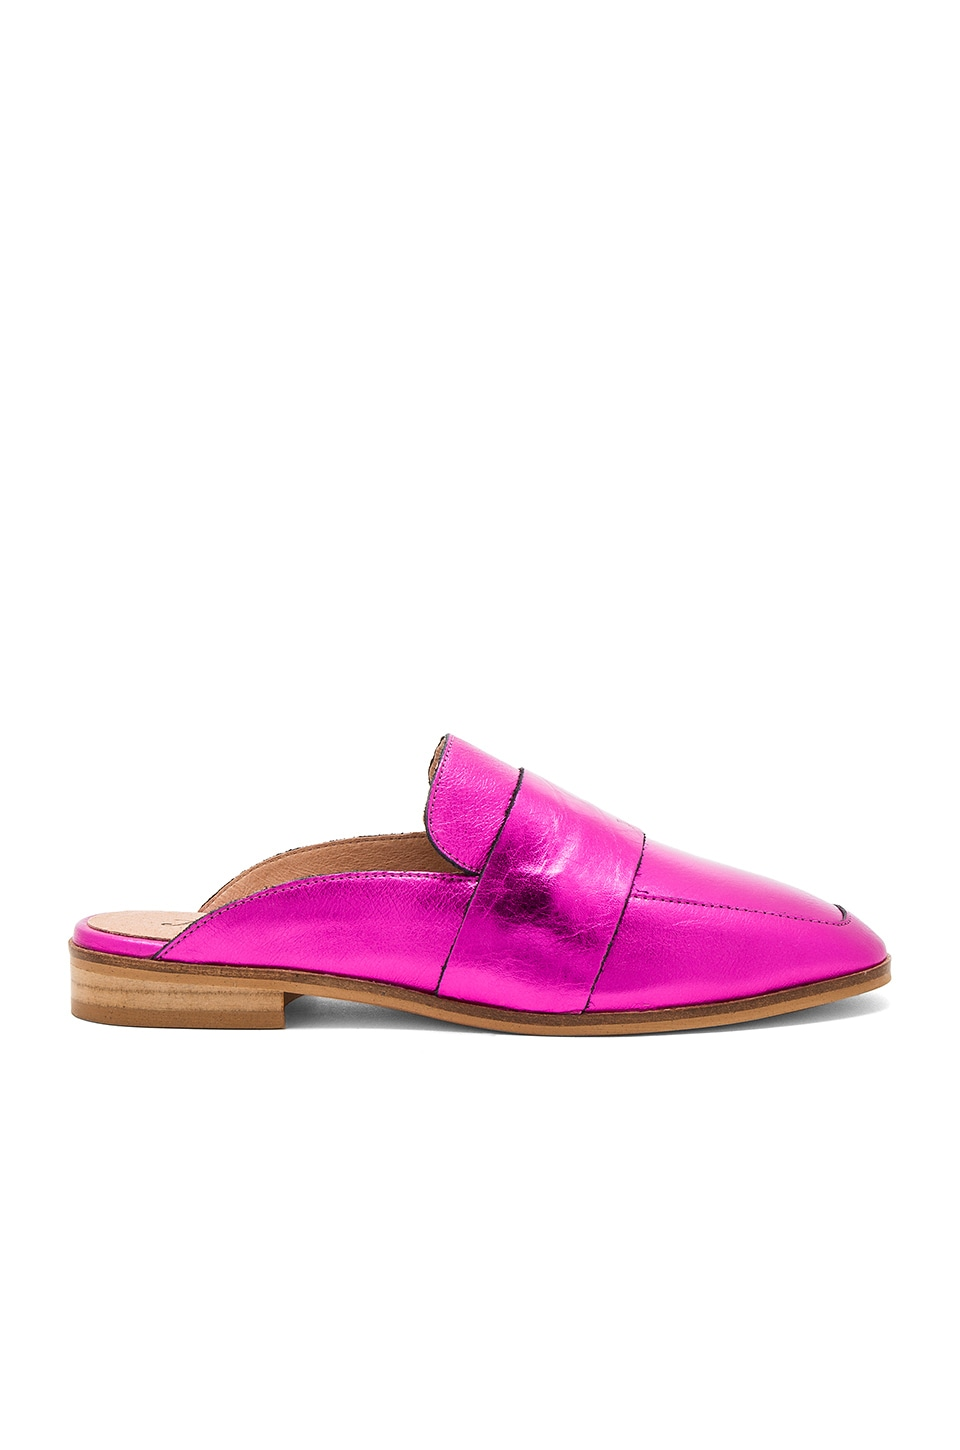 Free People At Ease Loafer in Pink